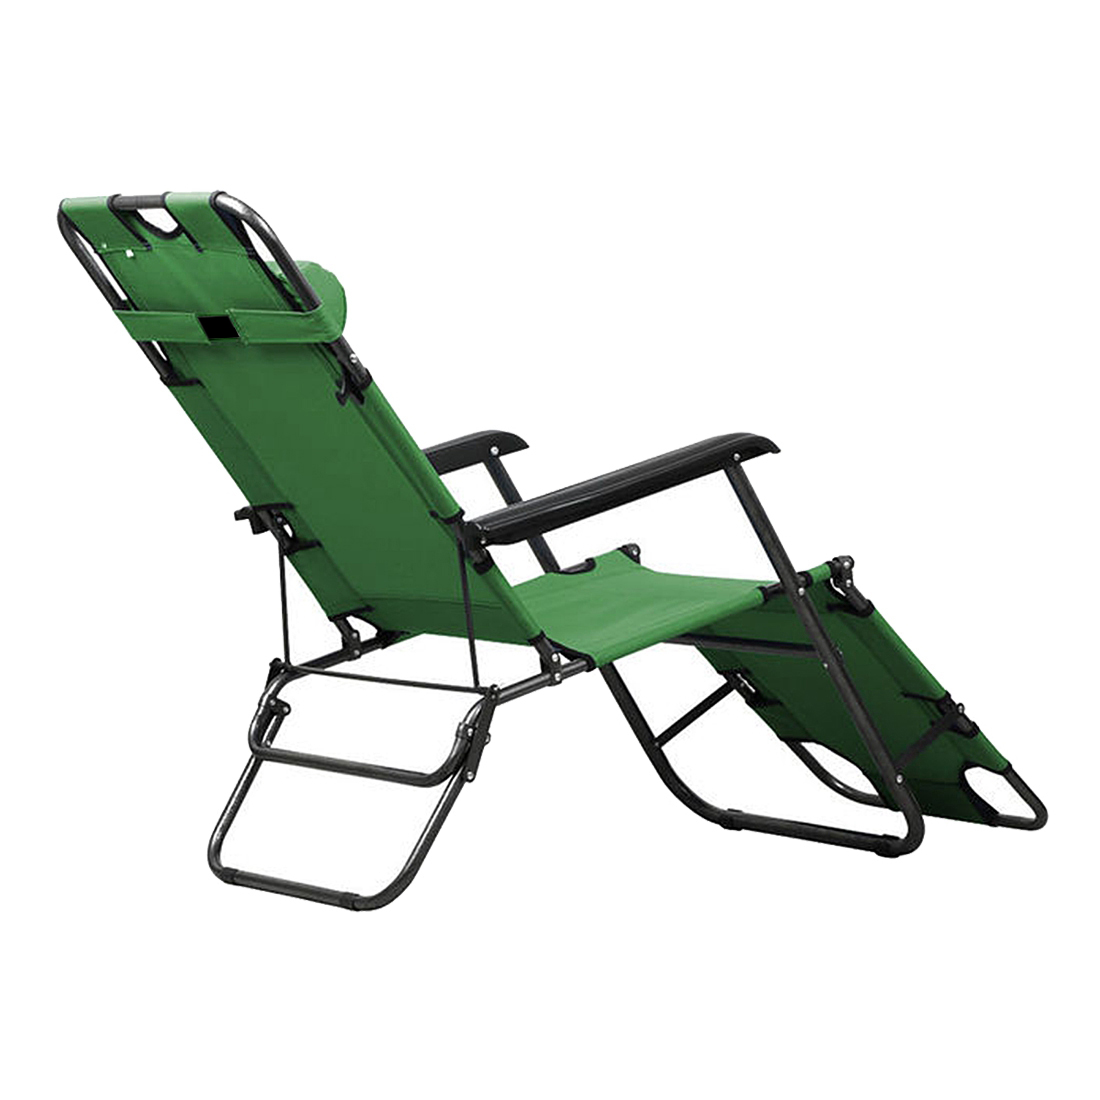 Metal Folding Chaise Lounge Chair Patio Outdoor Pool Beach ...